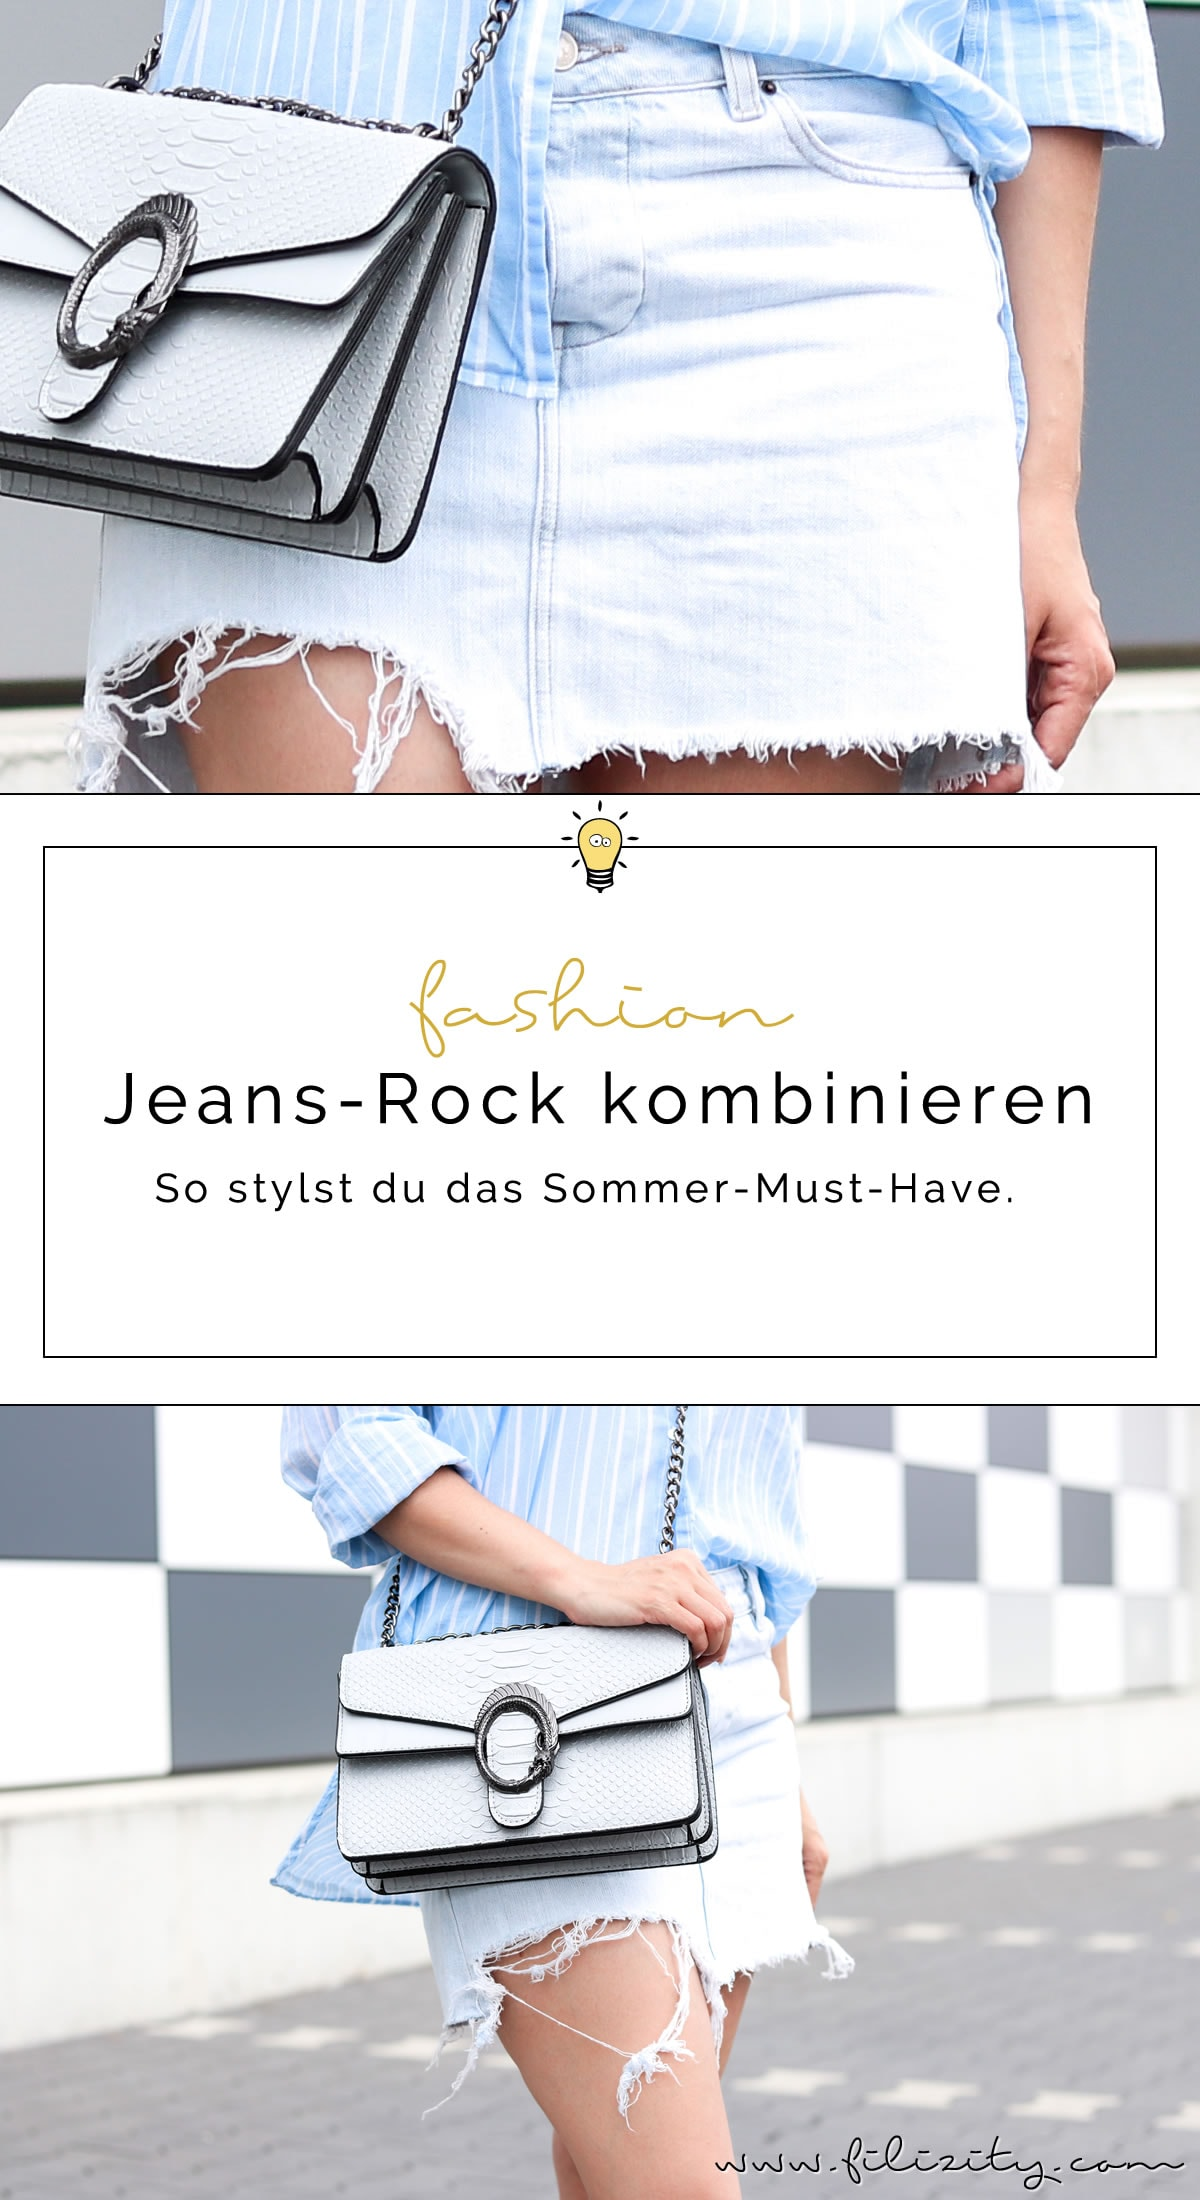 Fashion-Trend Jeansrock kombinieren – So stylst du das Sommer-Must-Have